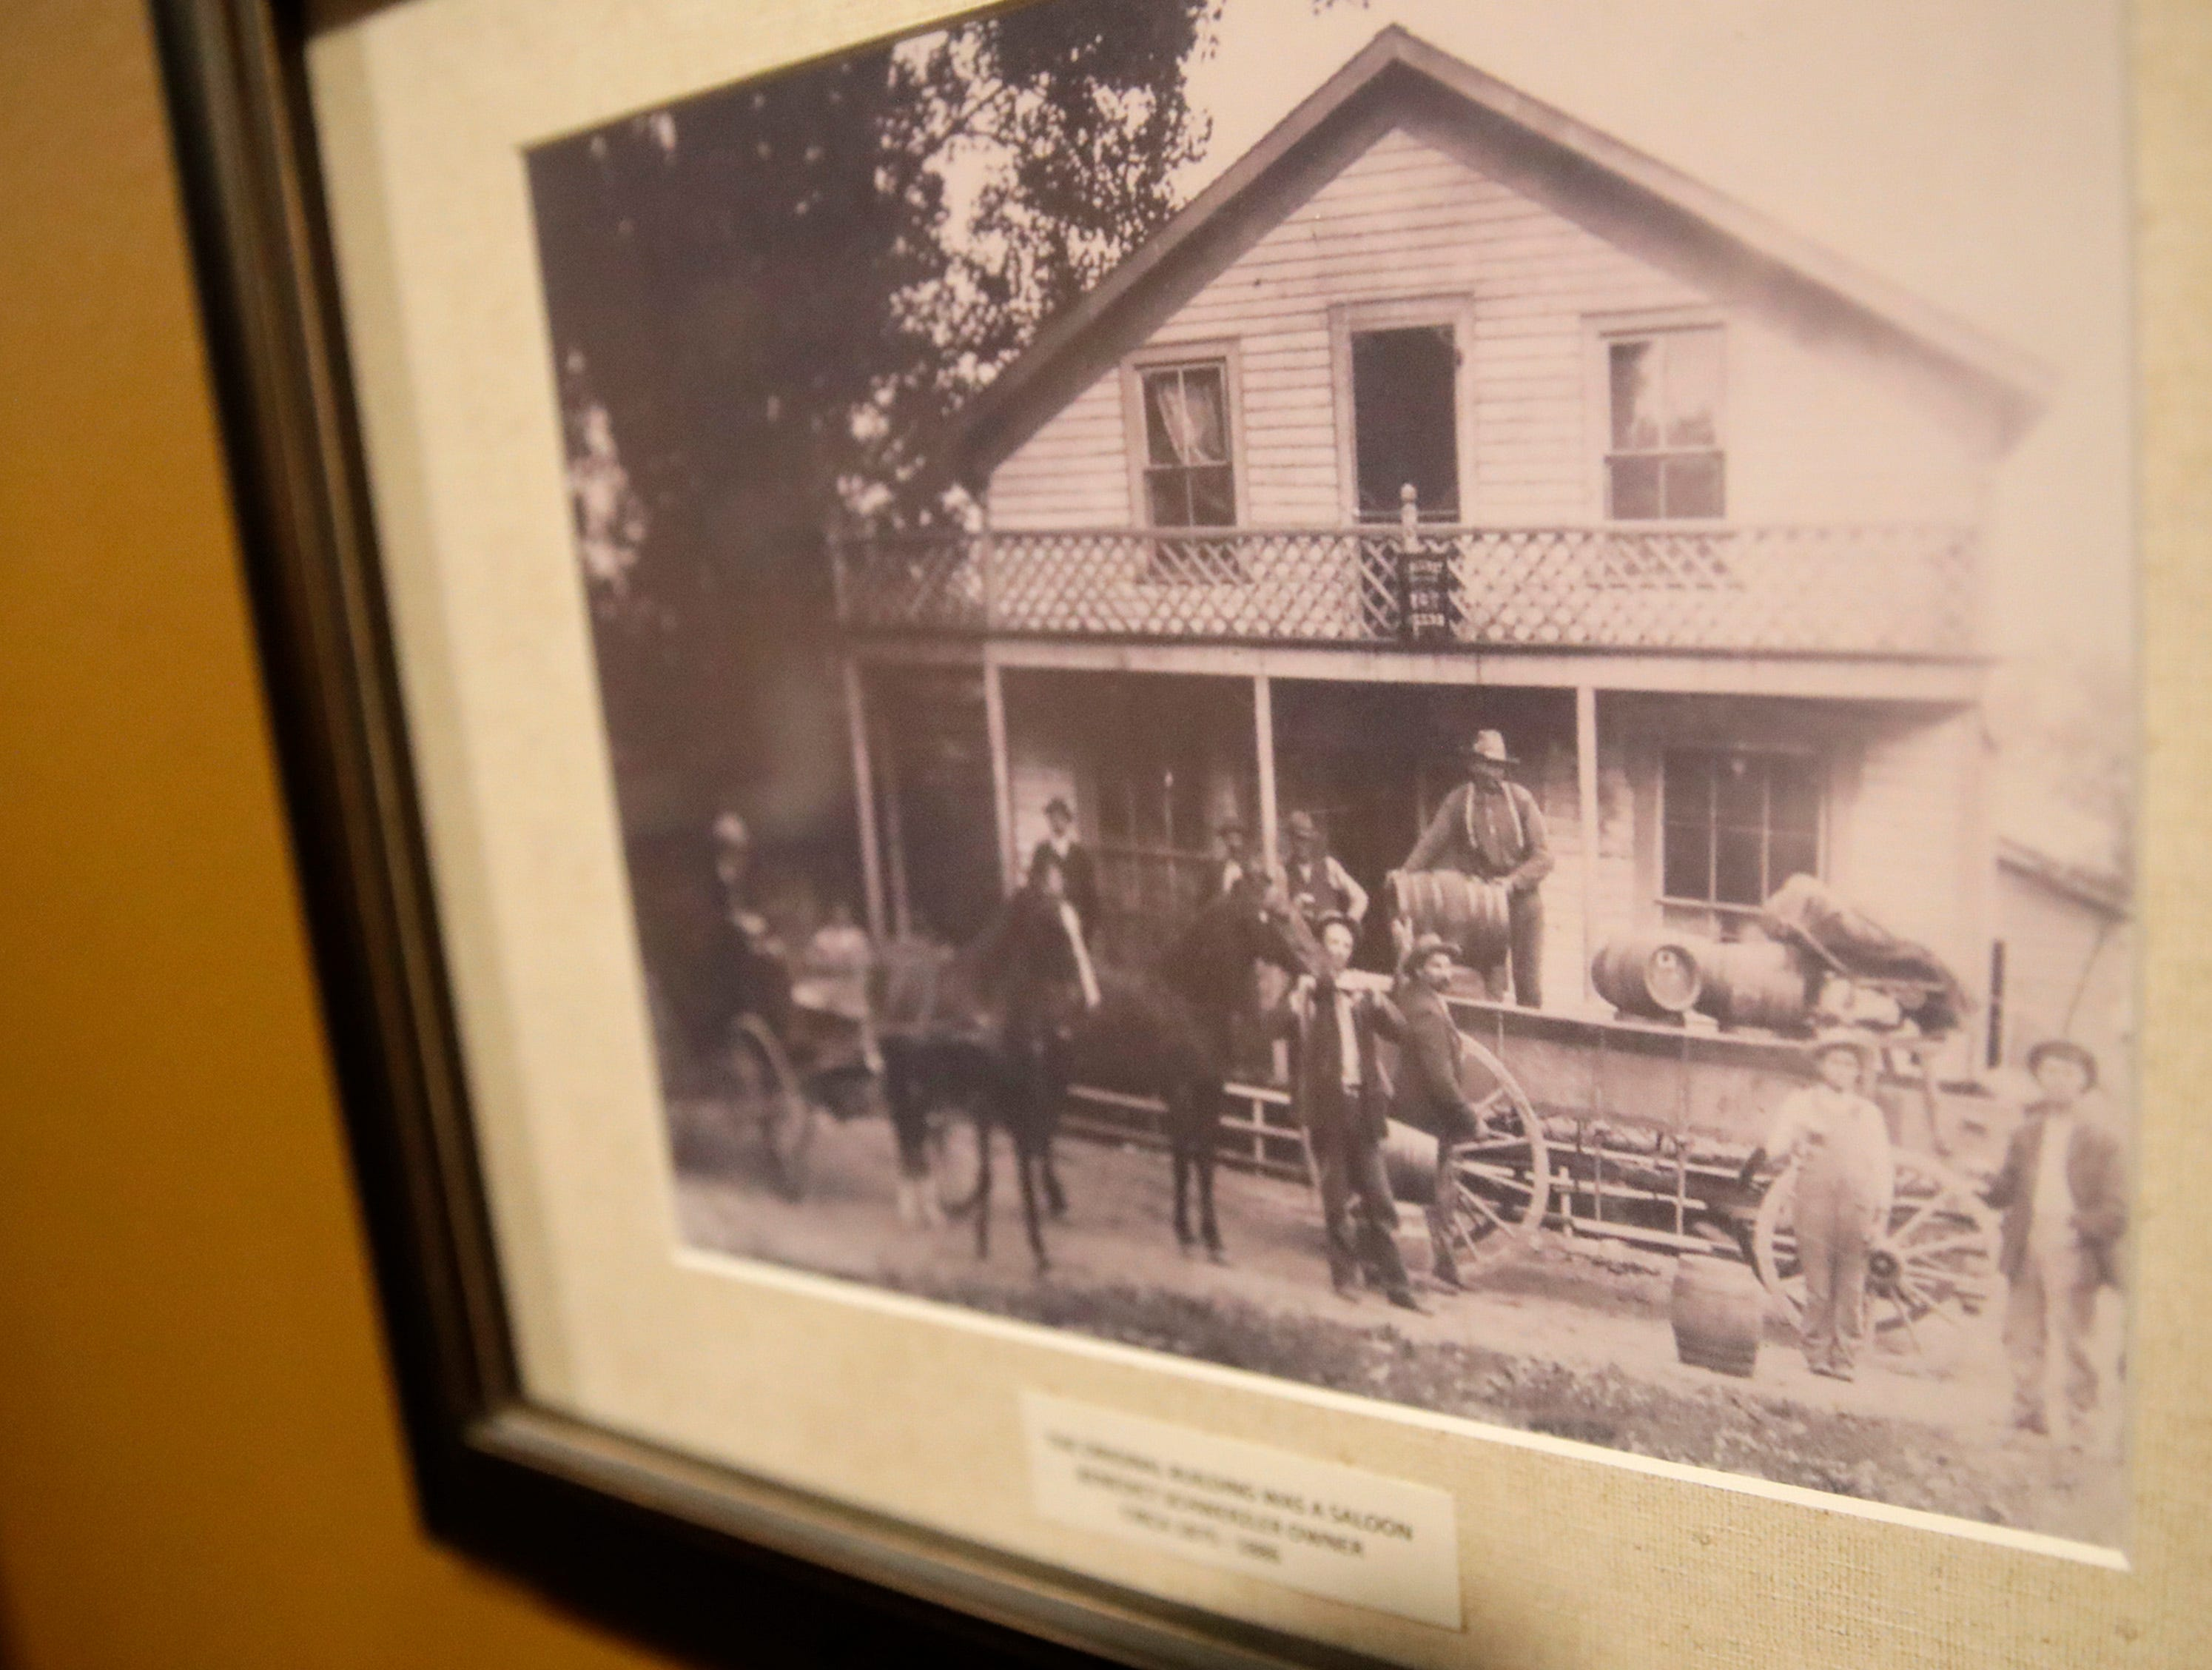 A framed photo of the original building that is part of Roepke's Village Inn circa 1875-1886 Wednesday, Dec. 12, 2018, in Charlesburg, Wis. The original building stands where Roepke's salad bar is now.